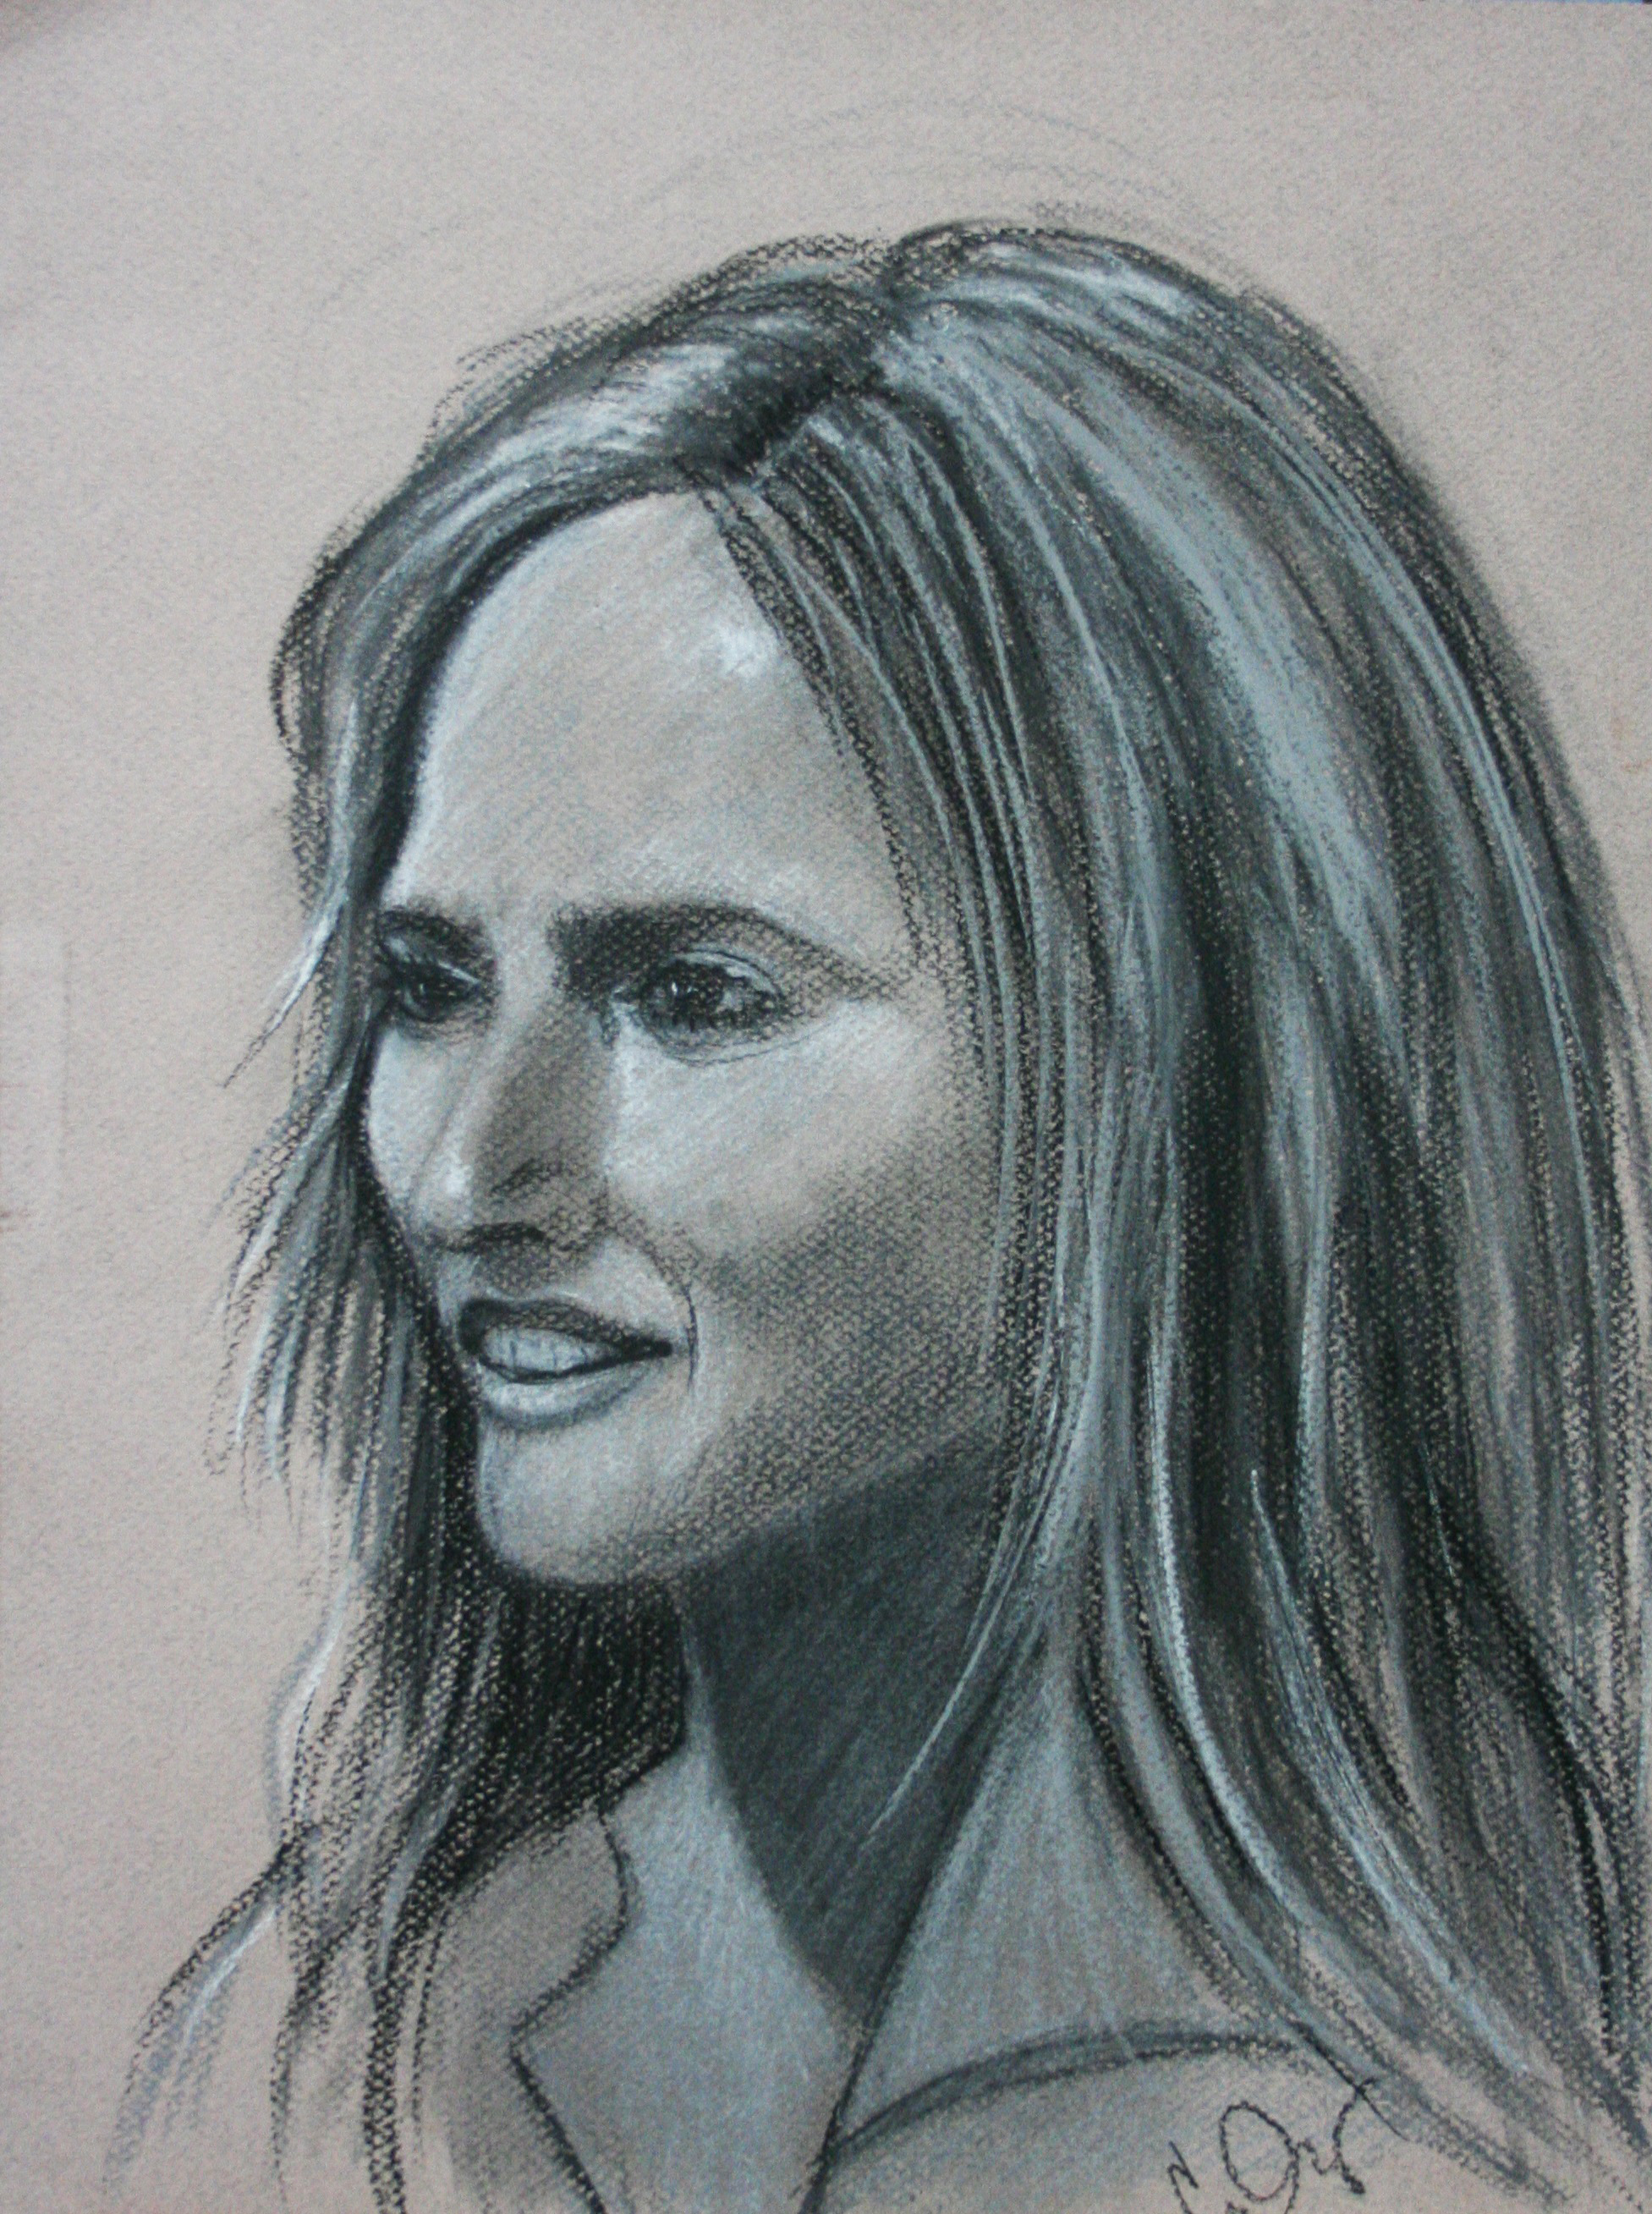 Casandra Dracup did this 2-hour drawing.